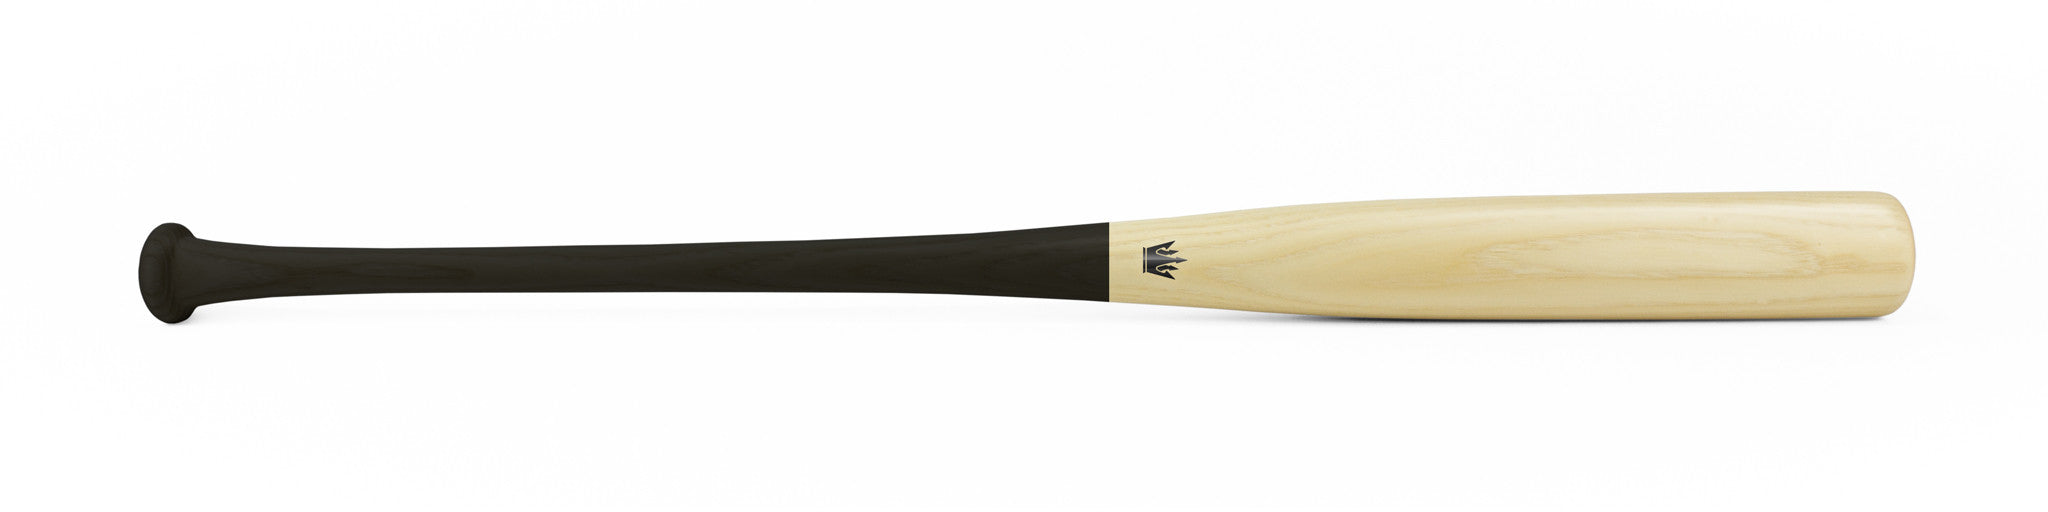 Wood bat - Ash model D24 Black Dip - 27